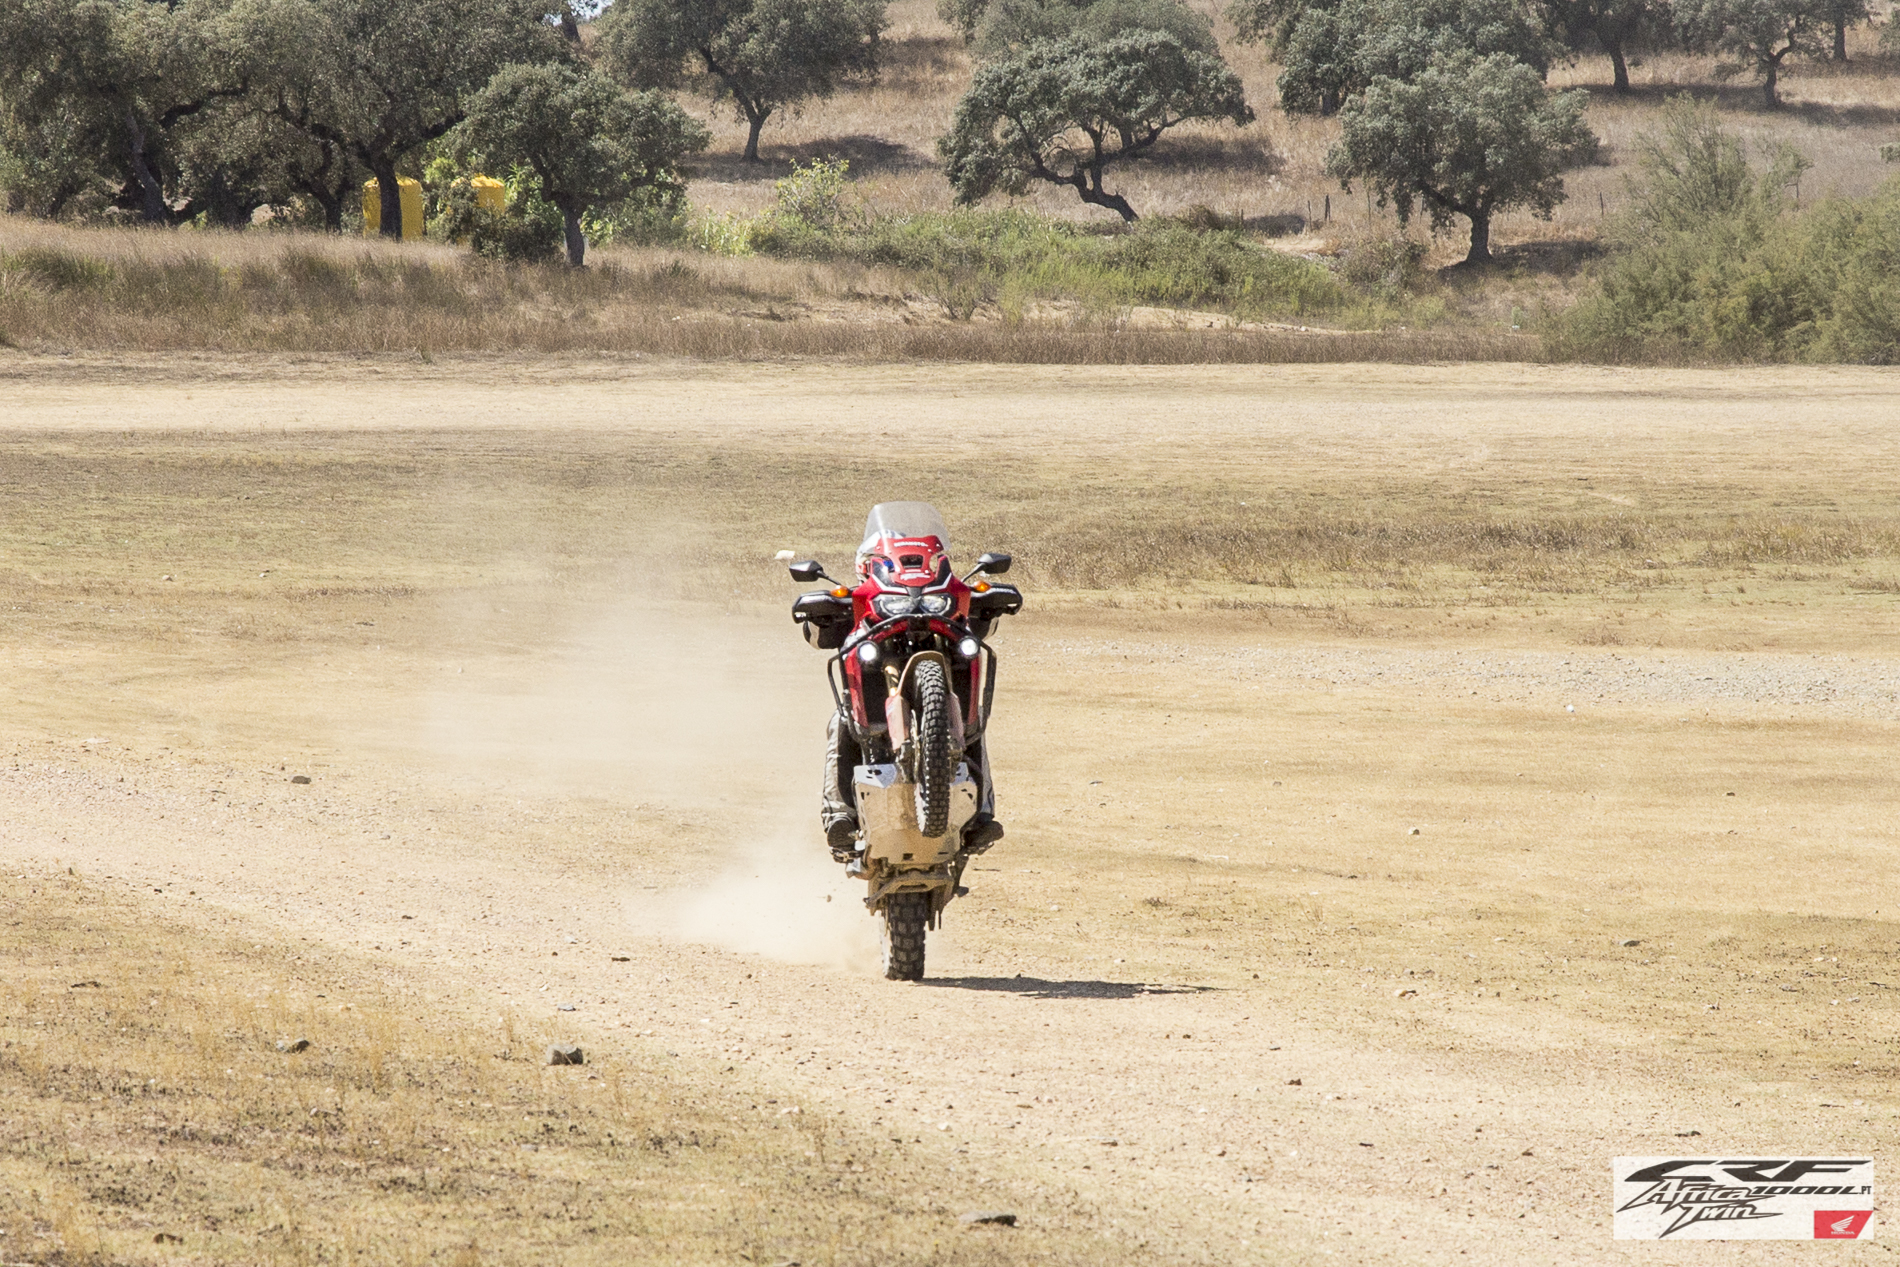 CRF1000L Africa Twin Wheelie